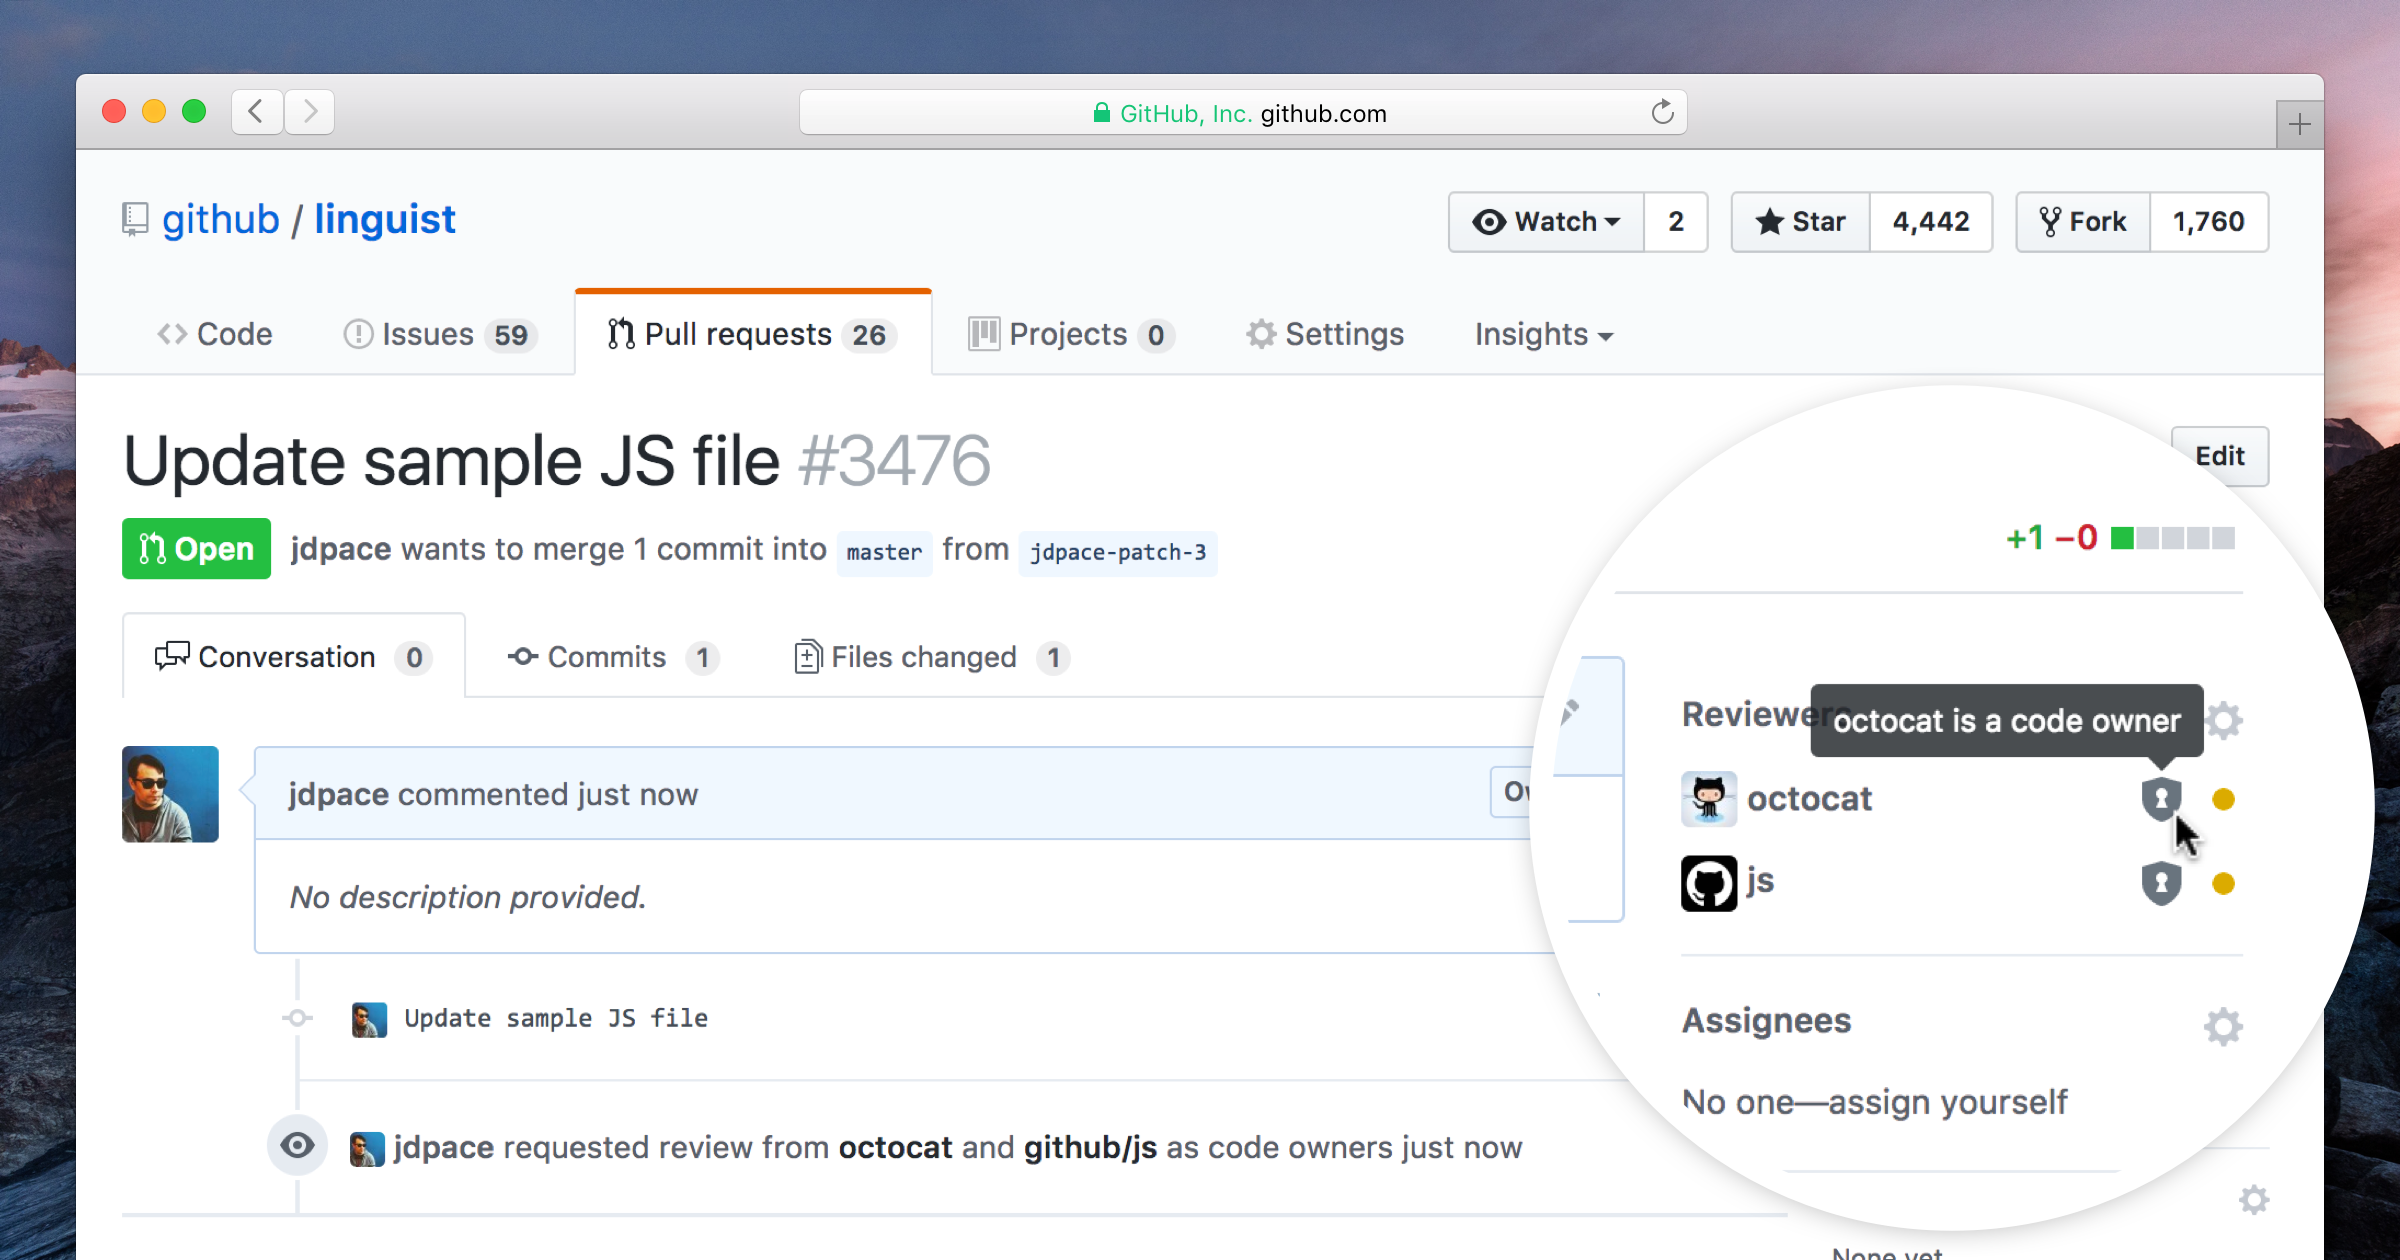 Introducing code owners - The GitHub Blog